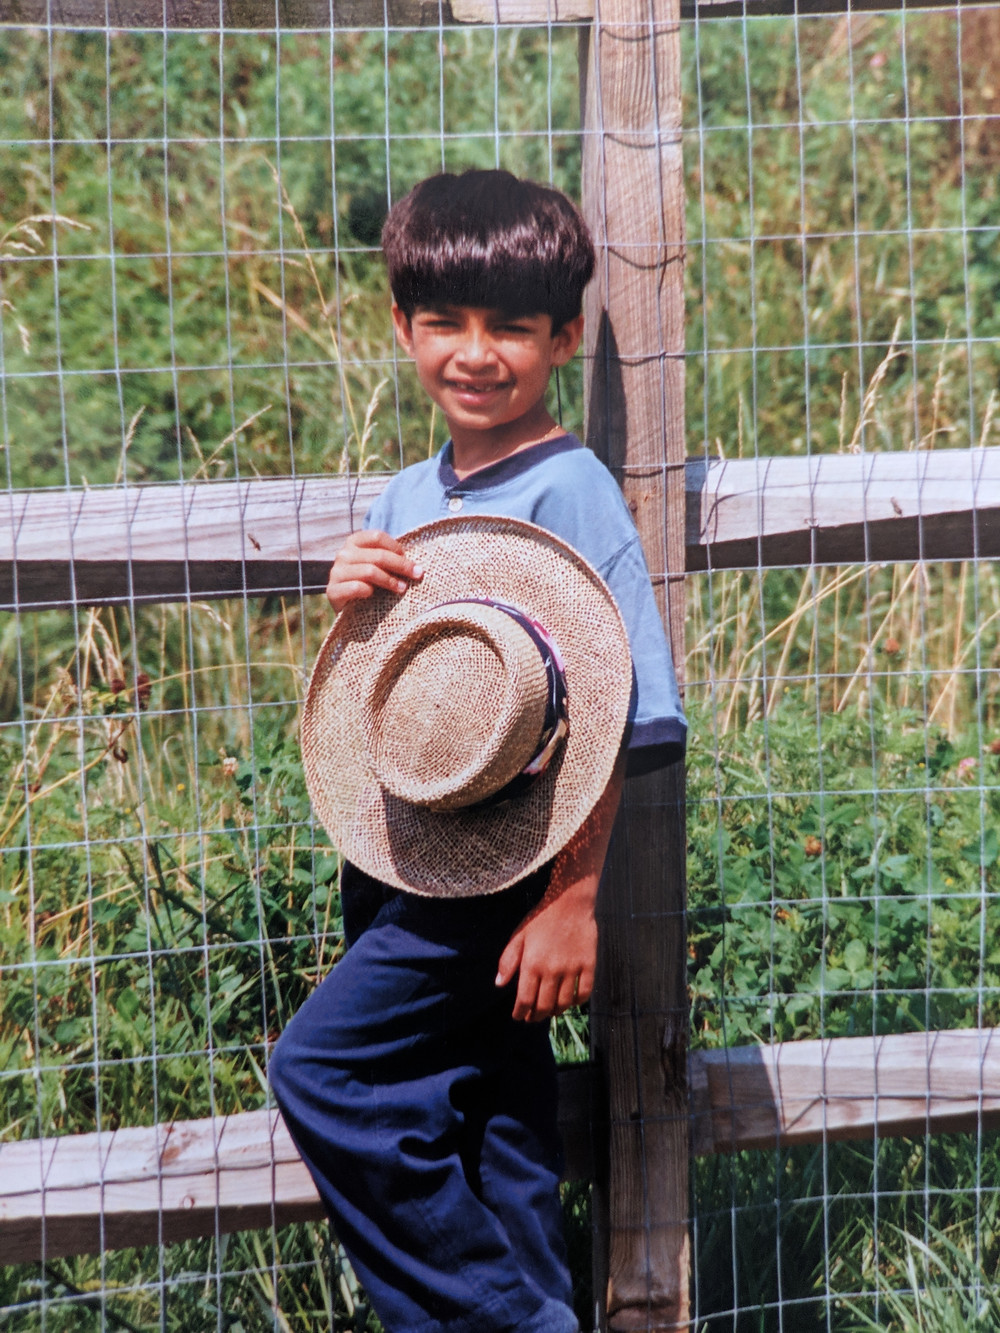 A six-year-old Uliya with a bowl cut stand against a brown wood fence with wire mesh. Behind then is a field of tall grass. They are holding sun hat and wearing blue pants and a light blue shoot.